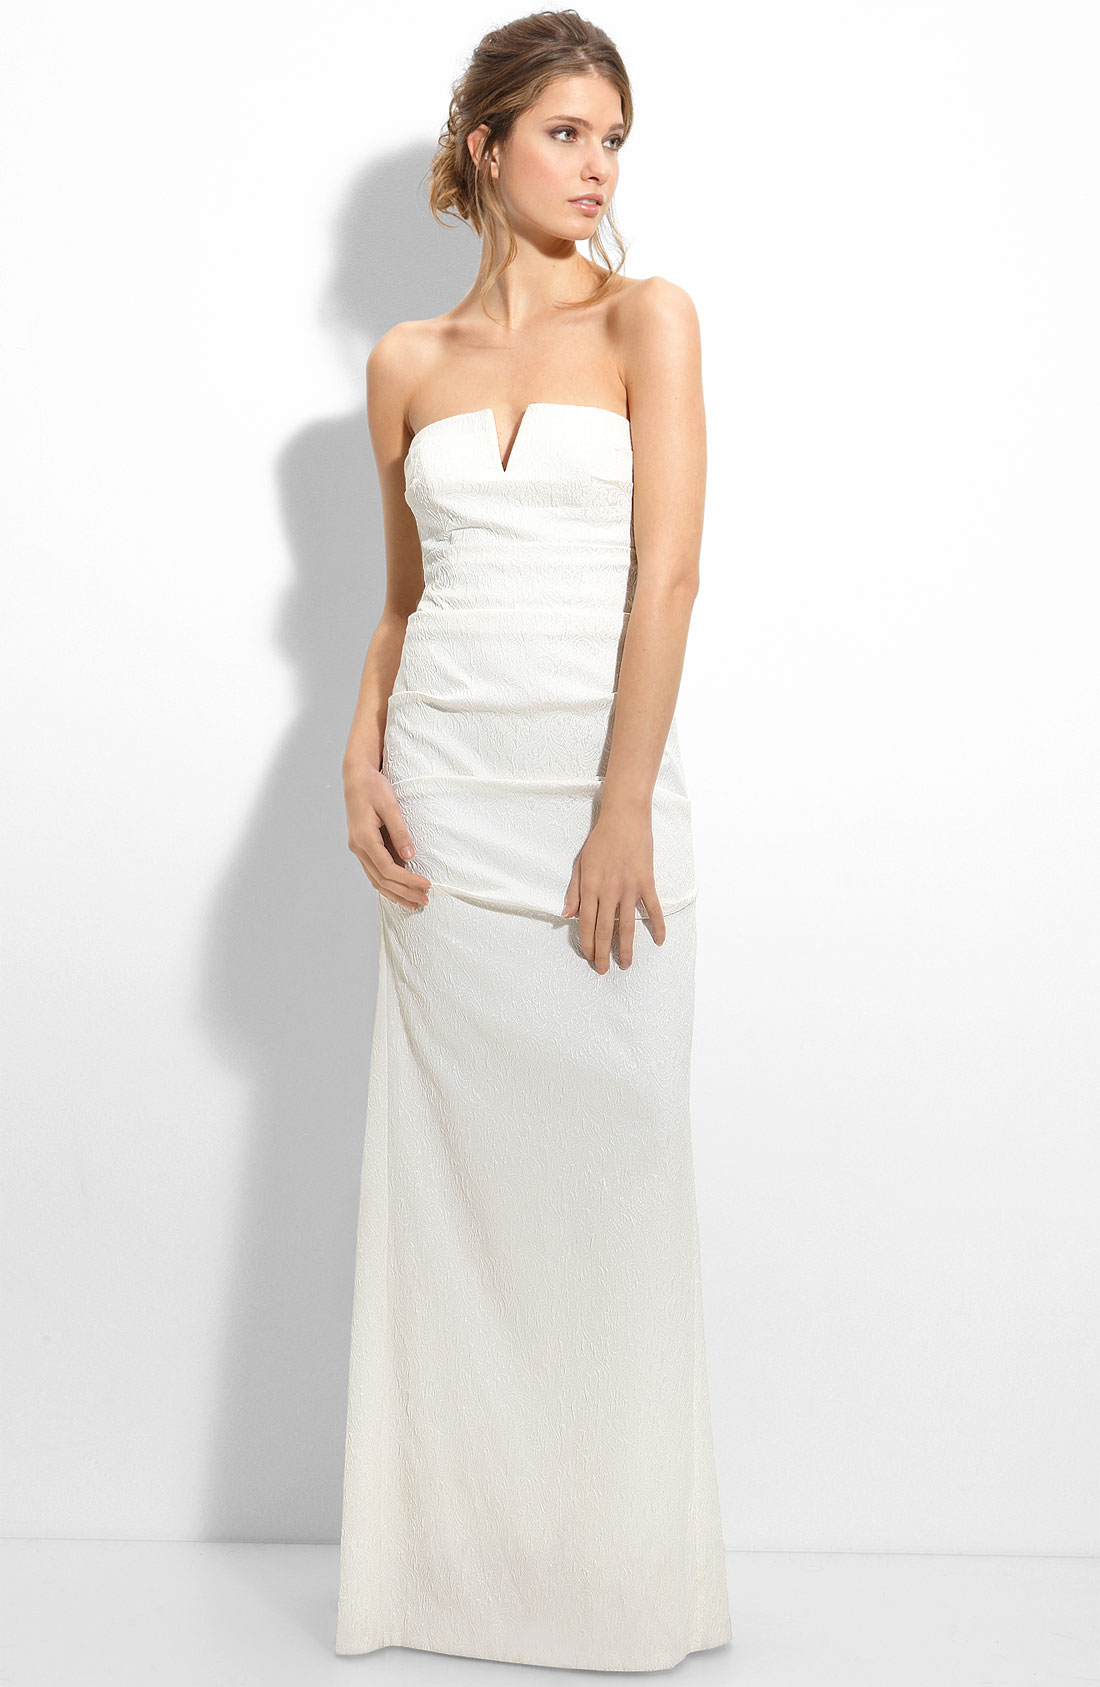 Mother of bride dresses nordstrom 2014 2015 fashion for Nicole miller wedding dresses nordstrom